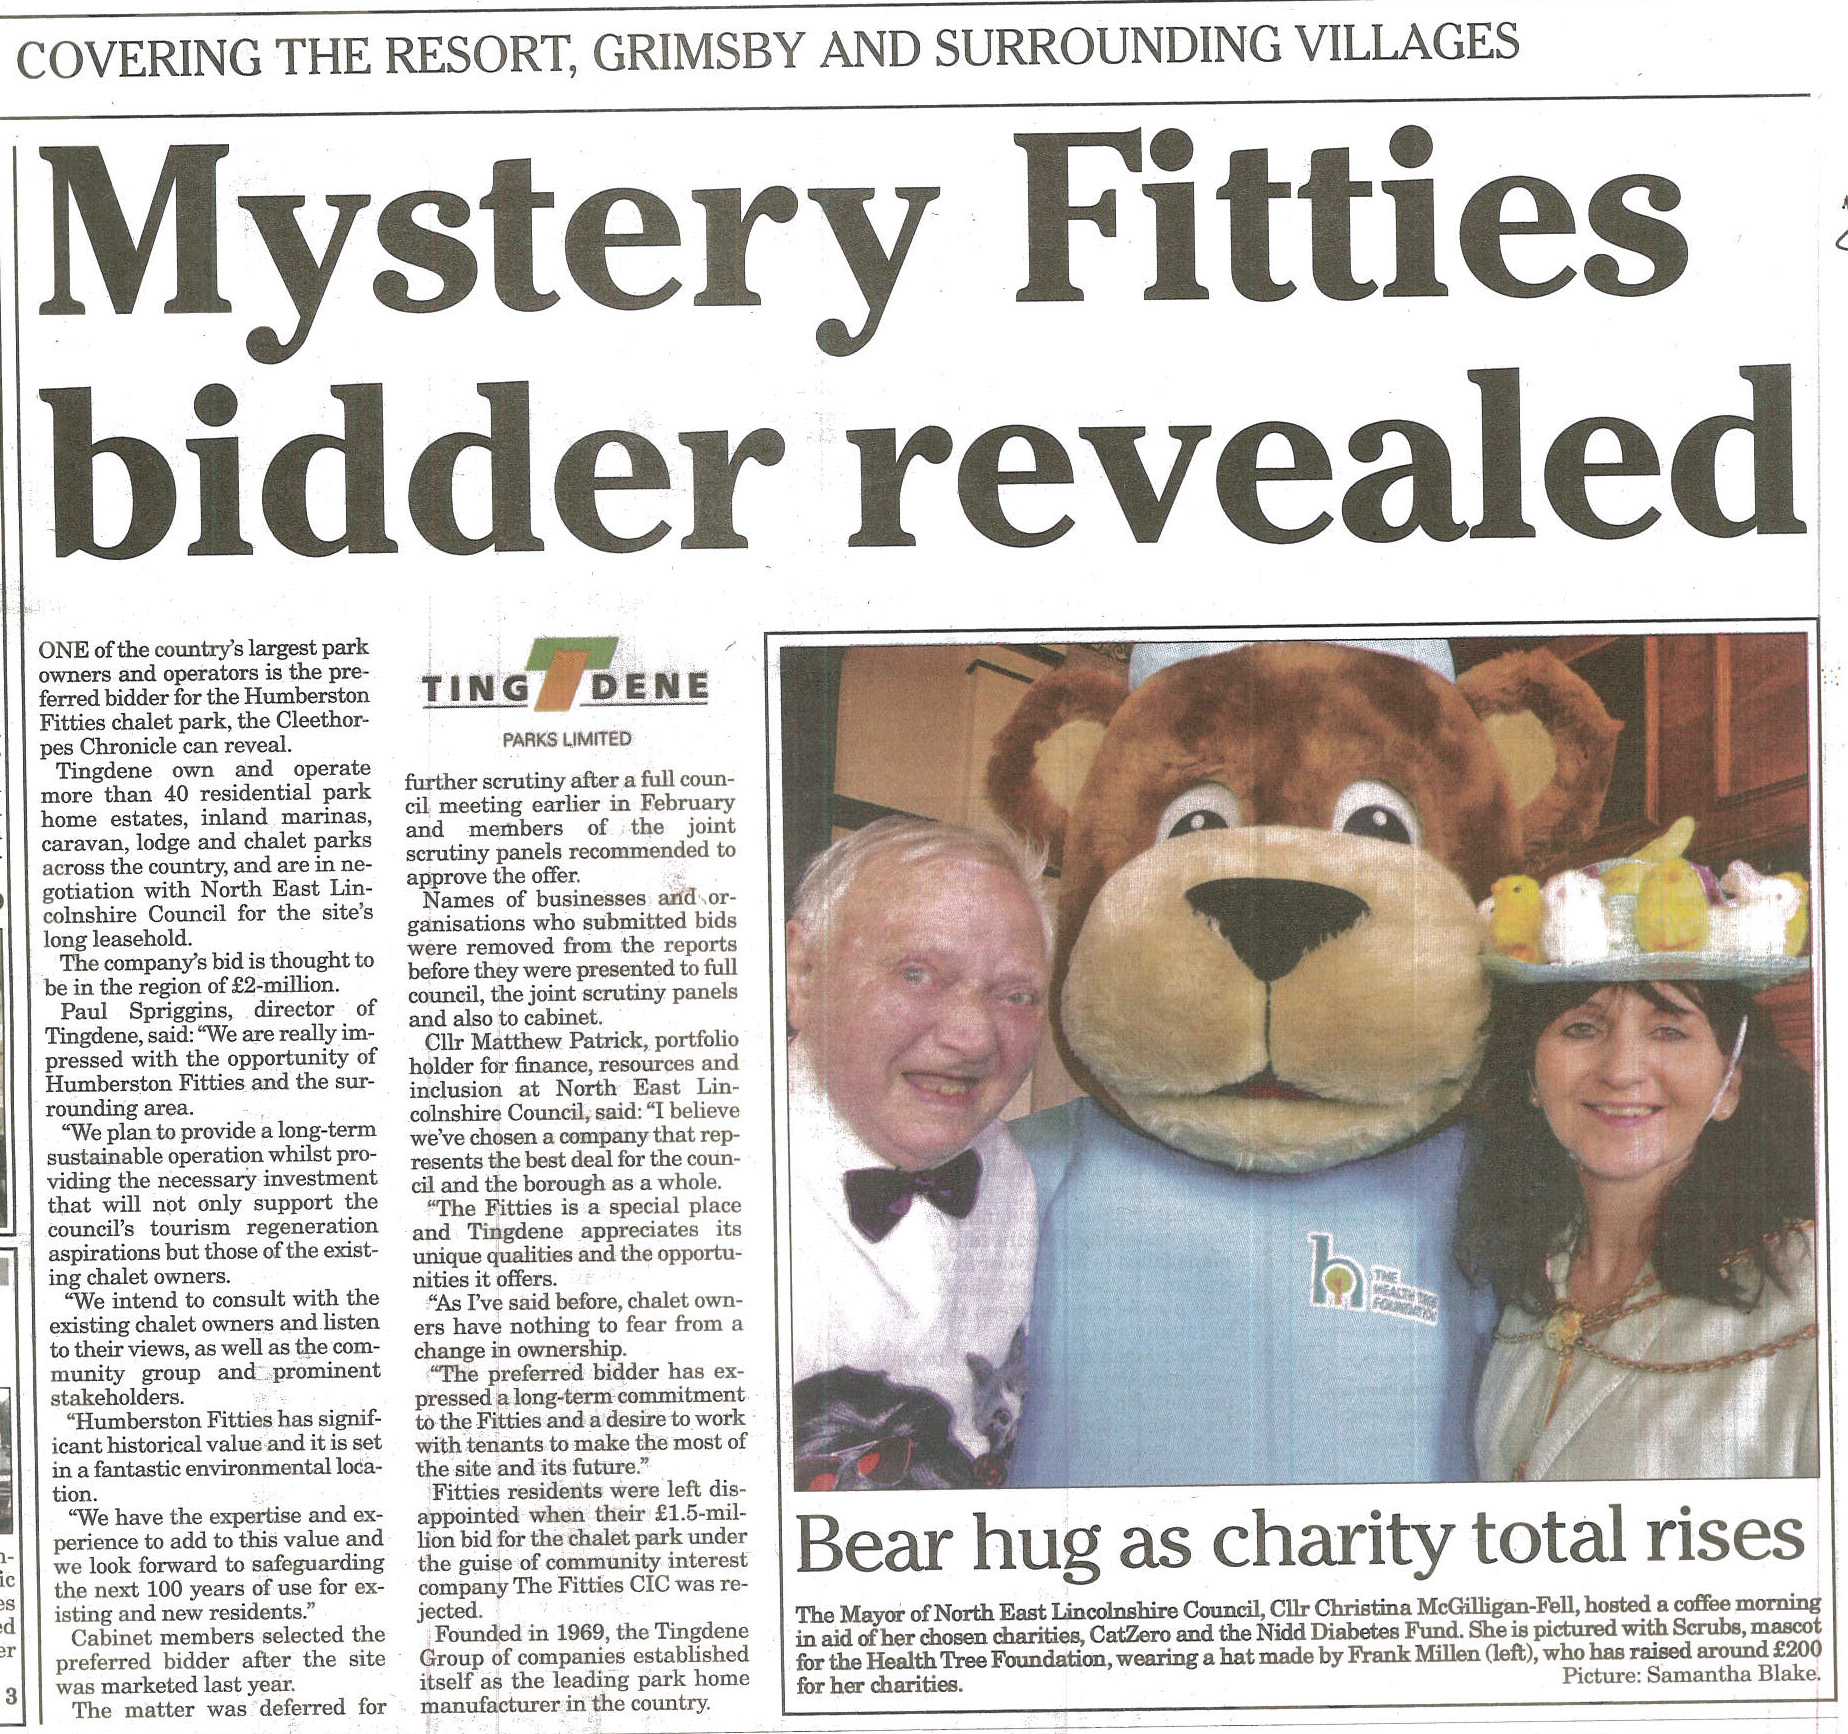 Above: Front page of the Cleethorpes Chronicle last week.